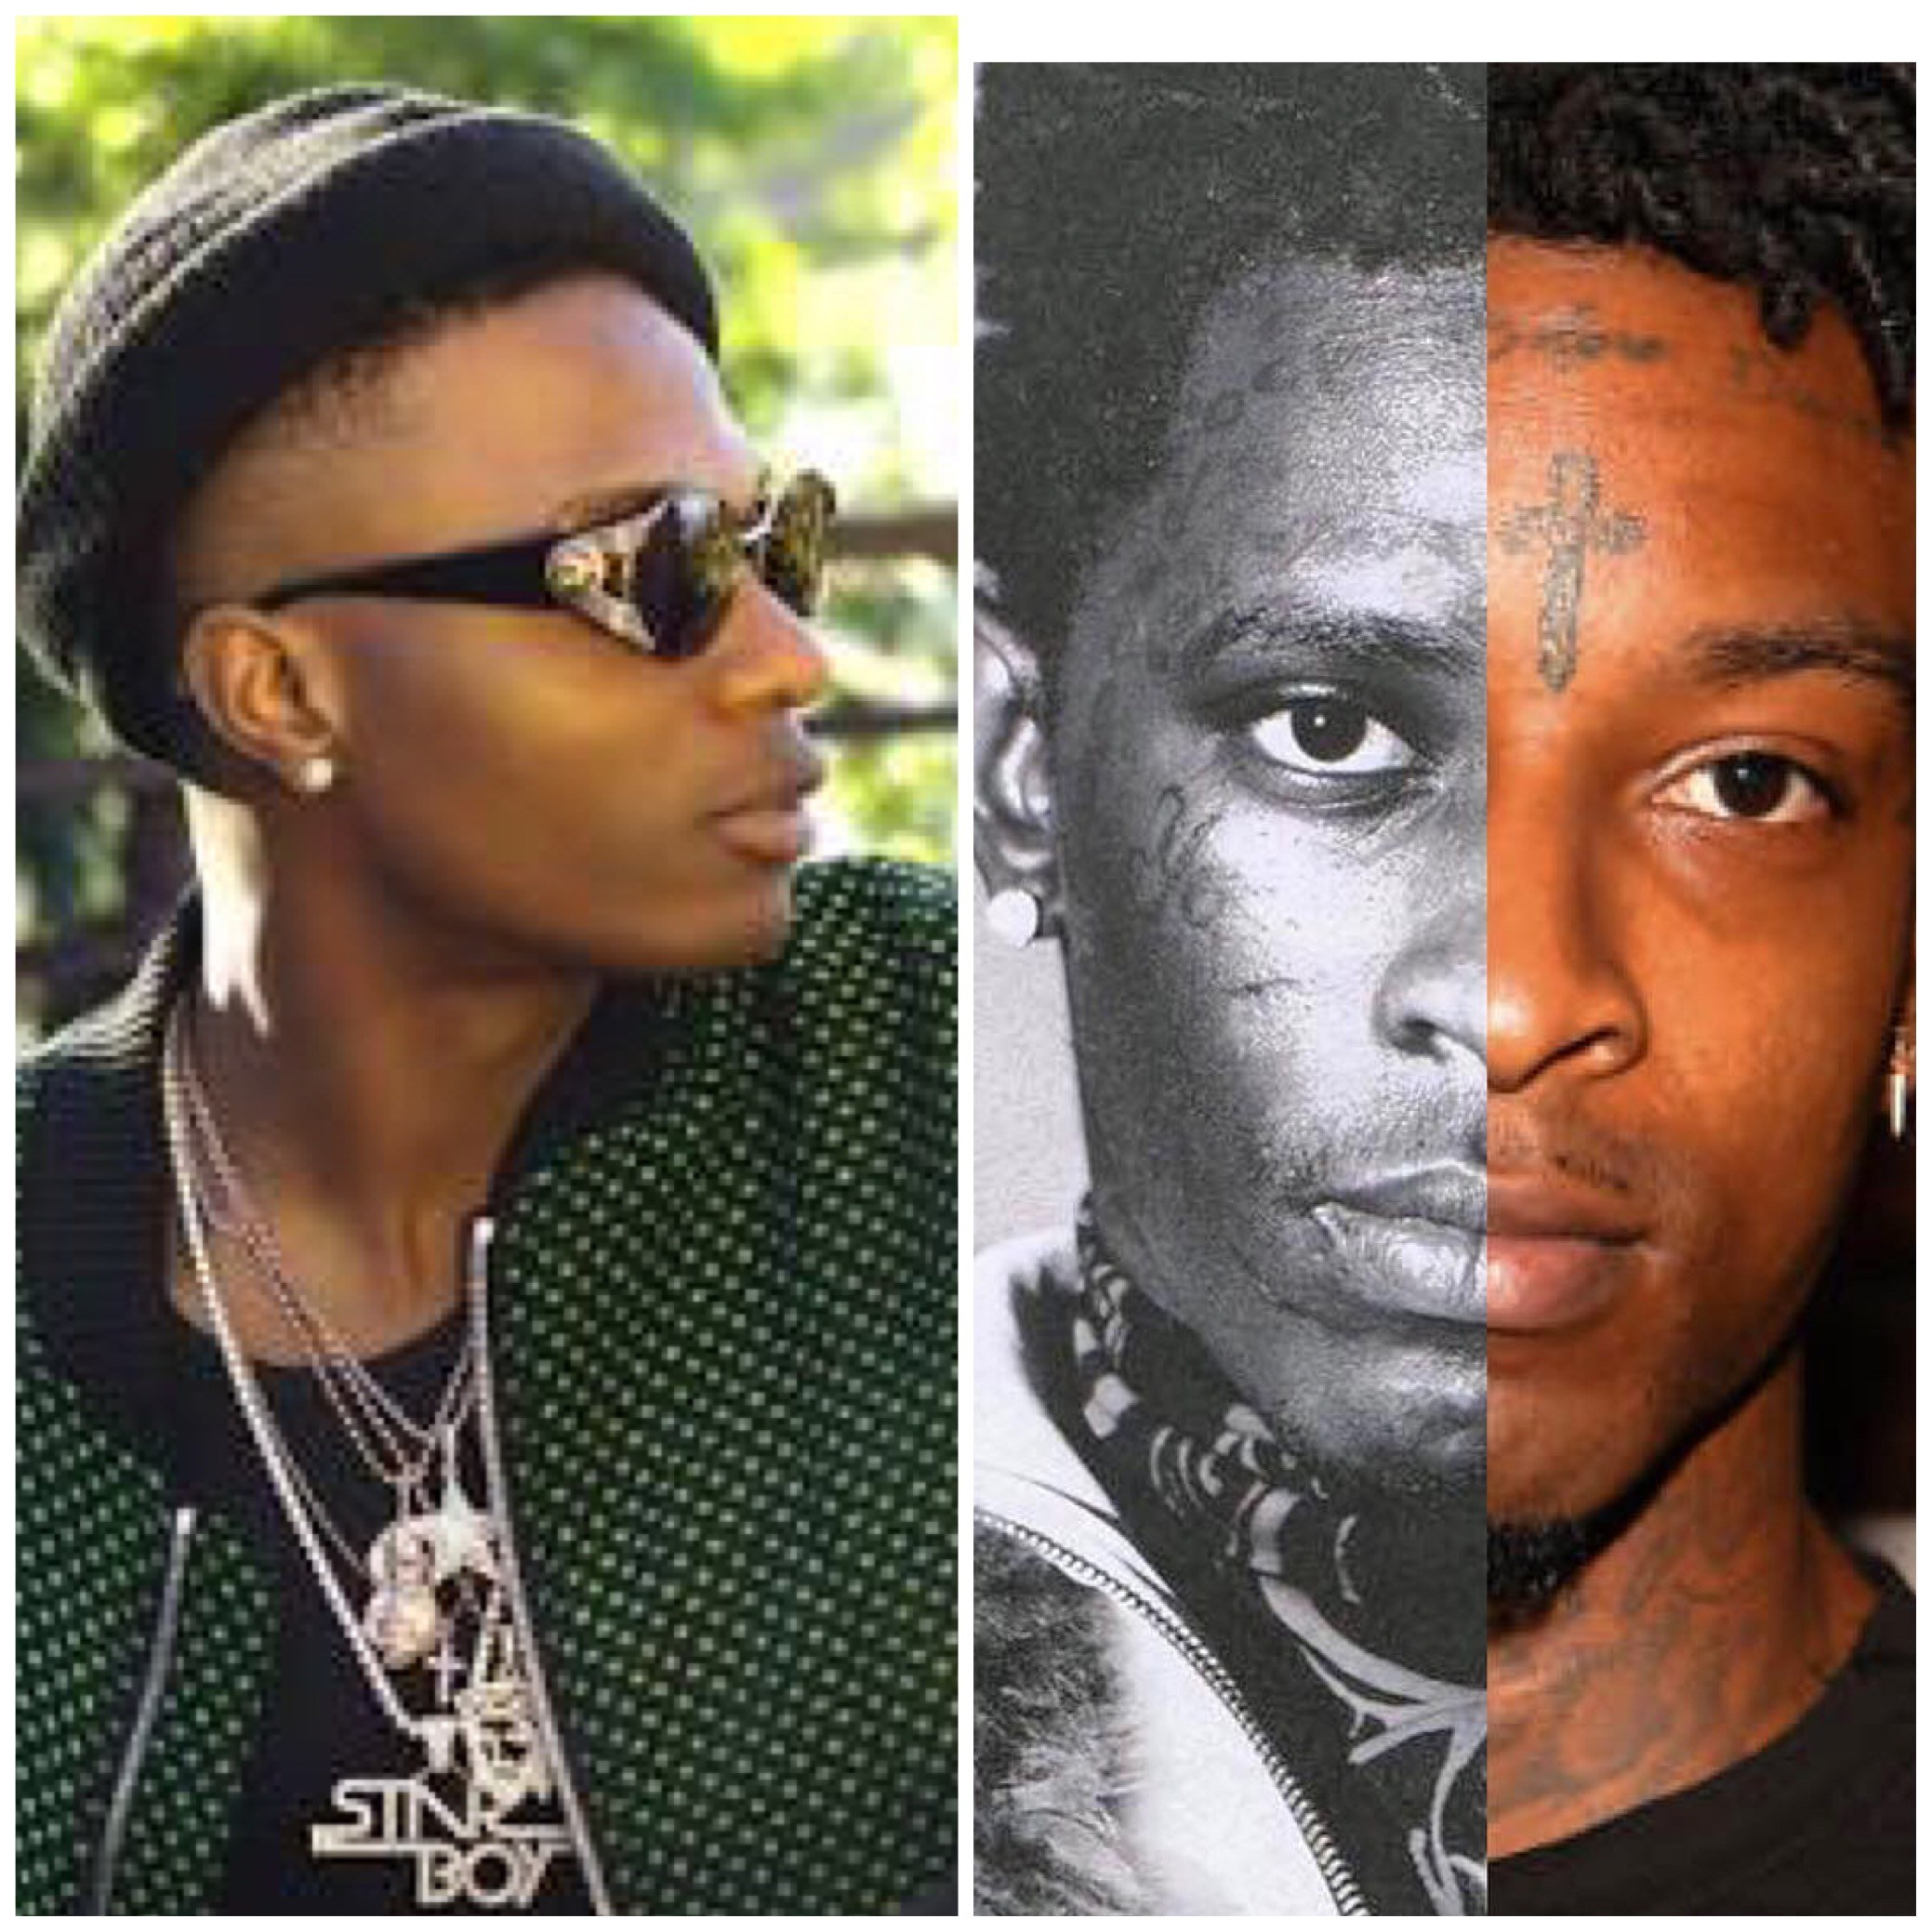 American Rapper Young Thug Comes For Wizkid On Instagram… See What He Wrote Under Wizkid's Pic [See Inside]